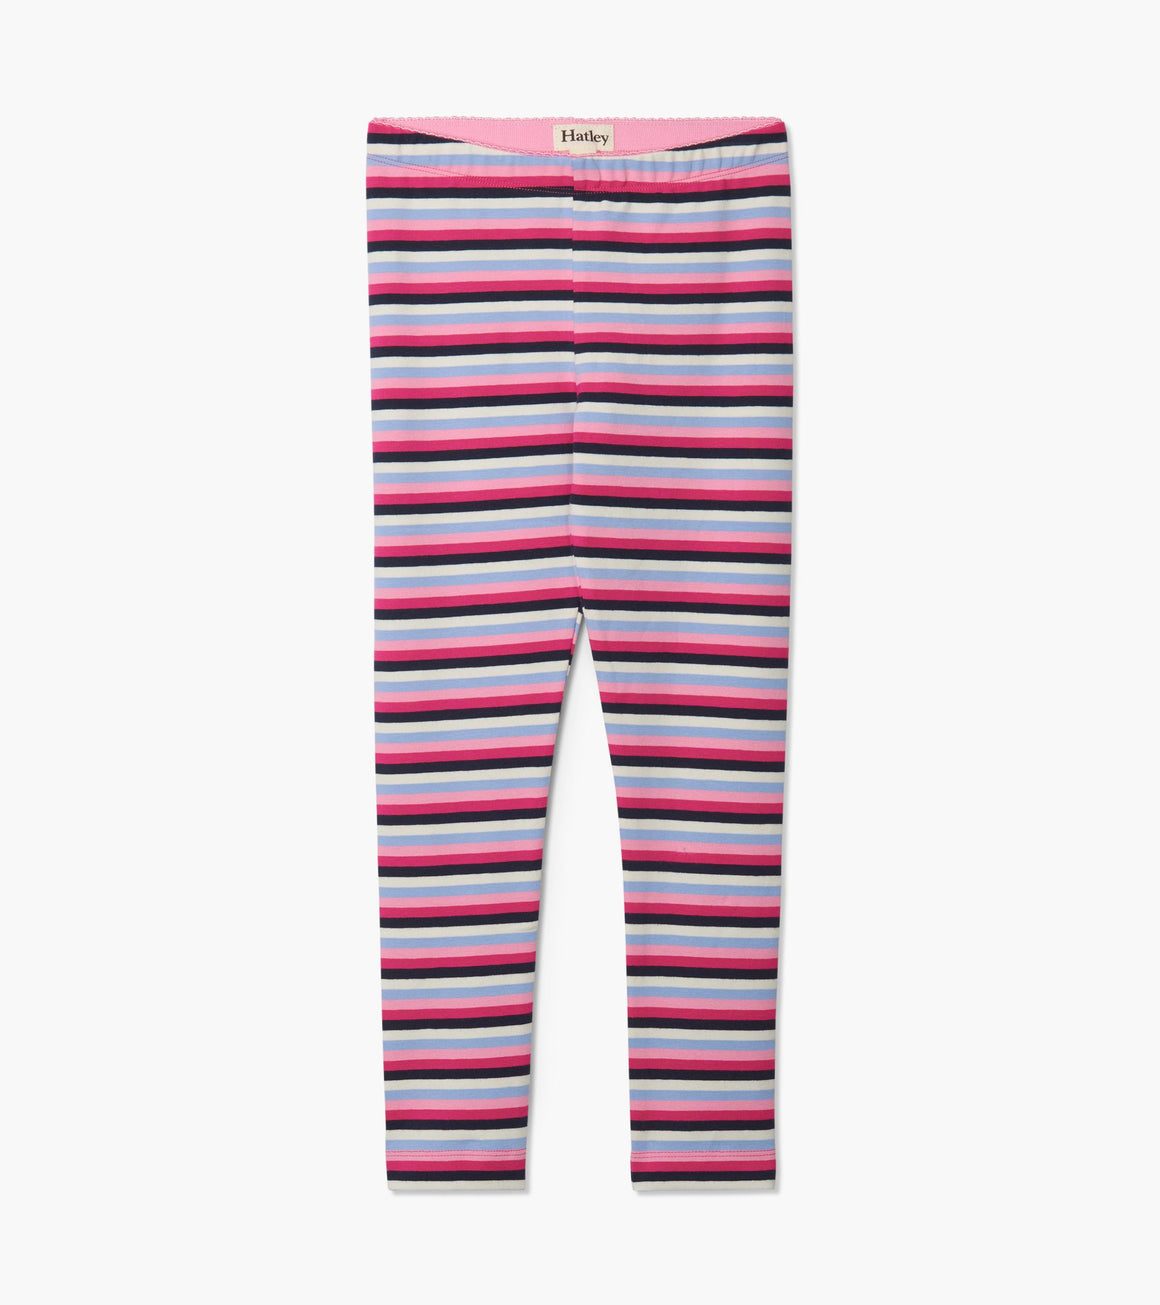 Girls stretch leggings in pink, light blue, white and navy stripe. Front